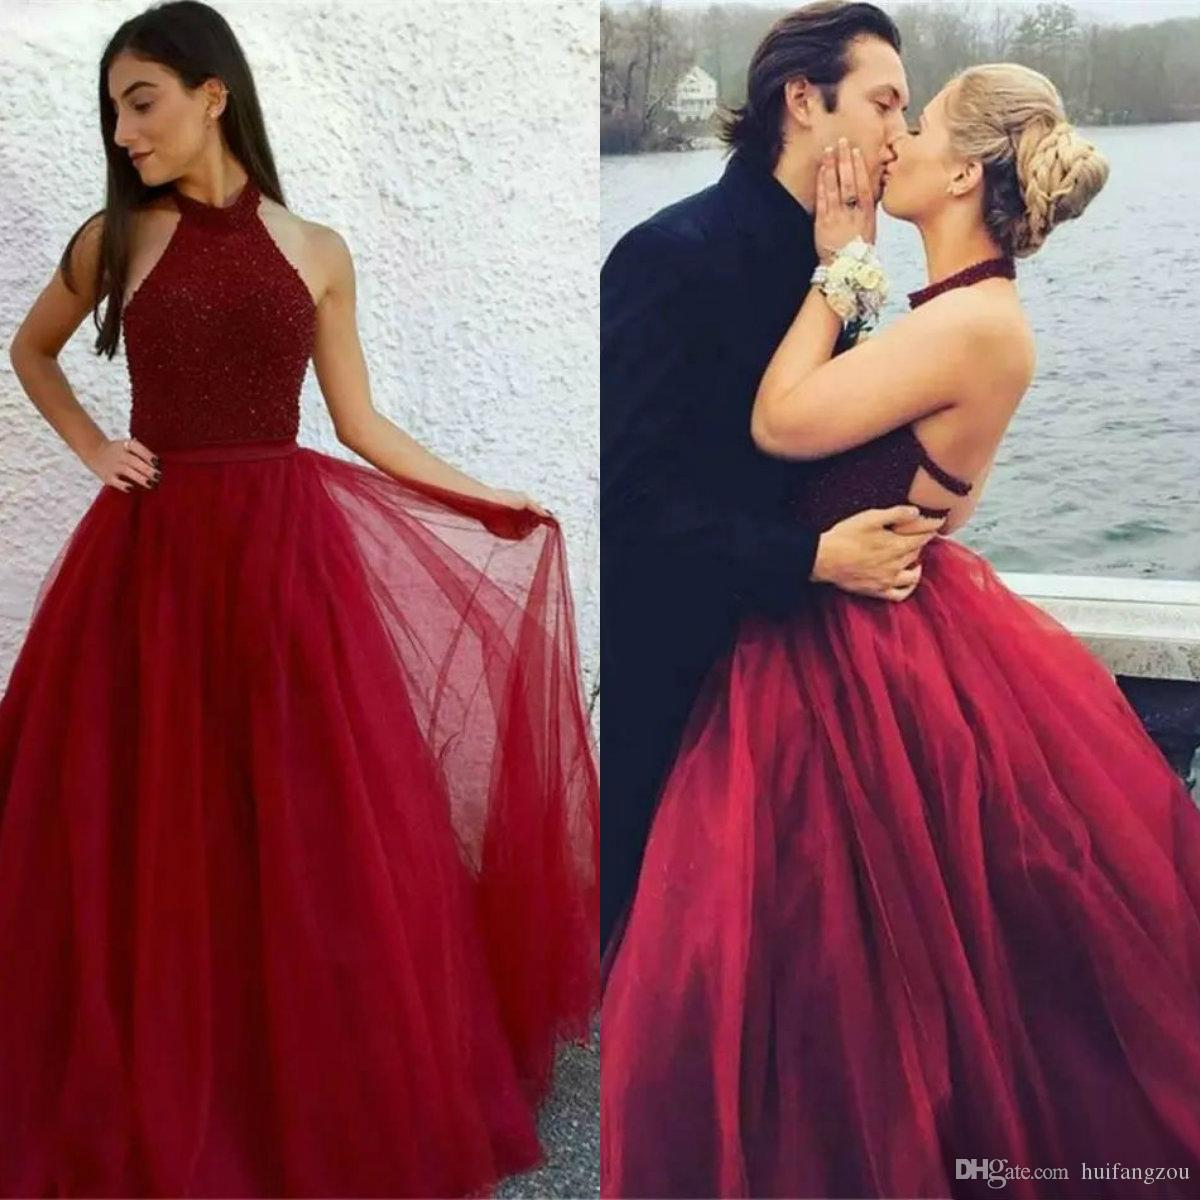 6477b5918a18 Latest Red Prom Dresses High Neck Major Beading Sequins Backless Long  Arabic Evening Formal Dresses 2018 Mermaid Prom Dress Custom Made Long Lace  Dresses ...